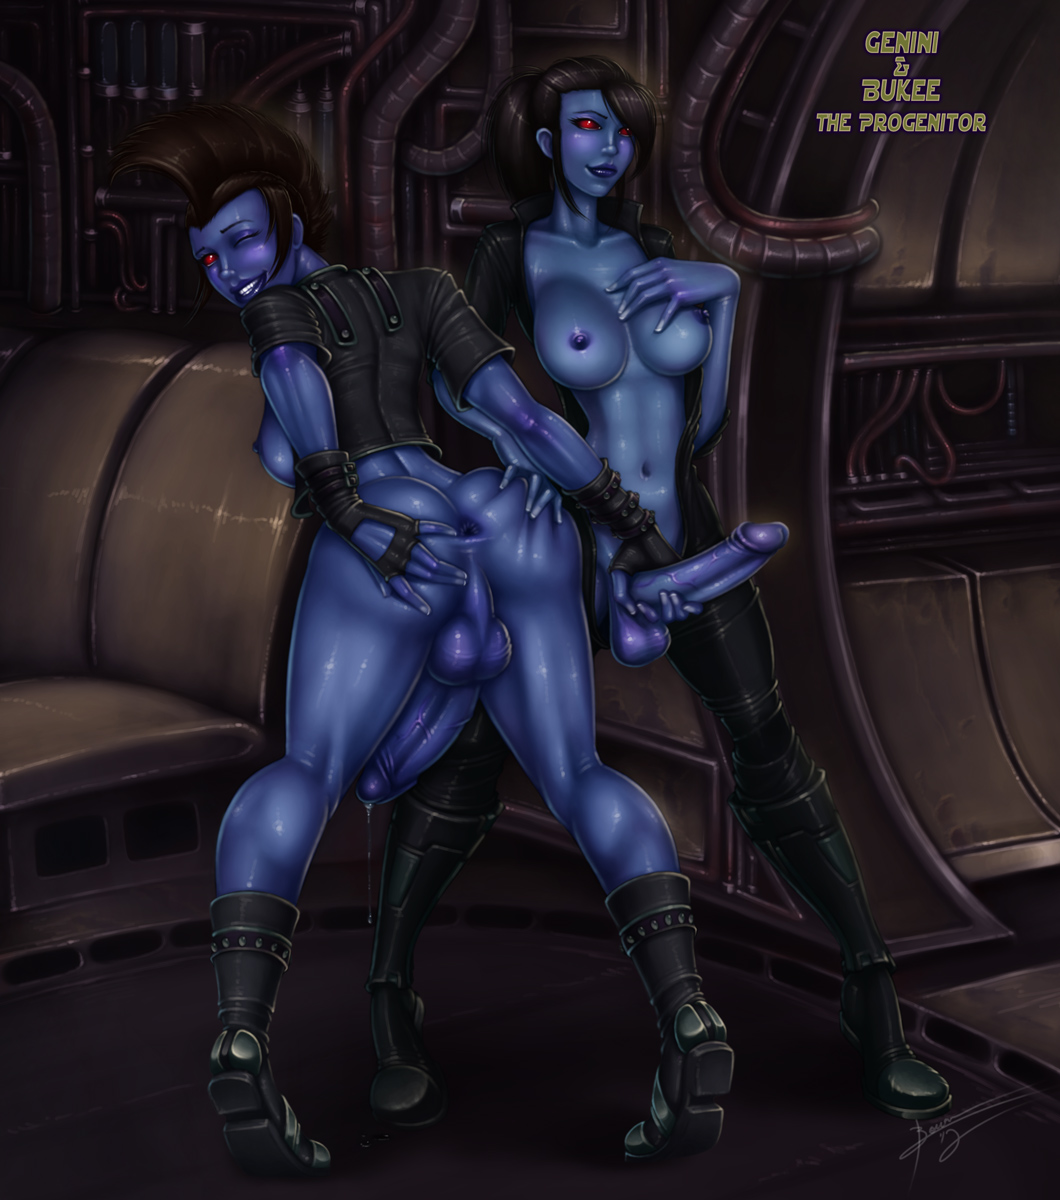 Blue alien girl star wars porn xxx photo